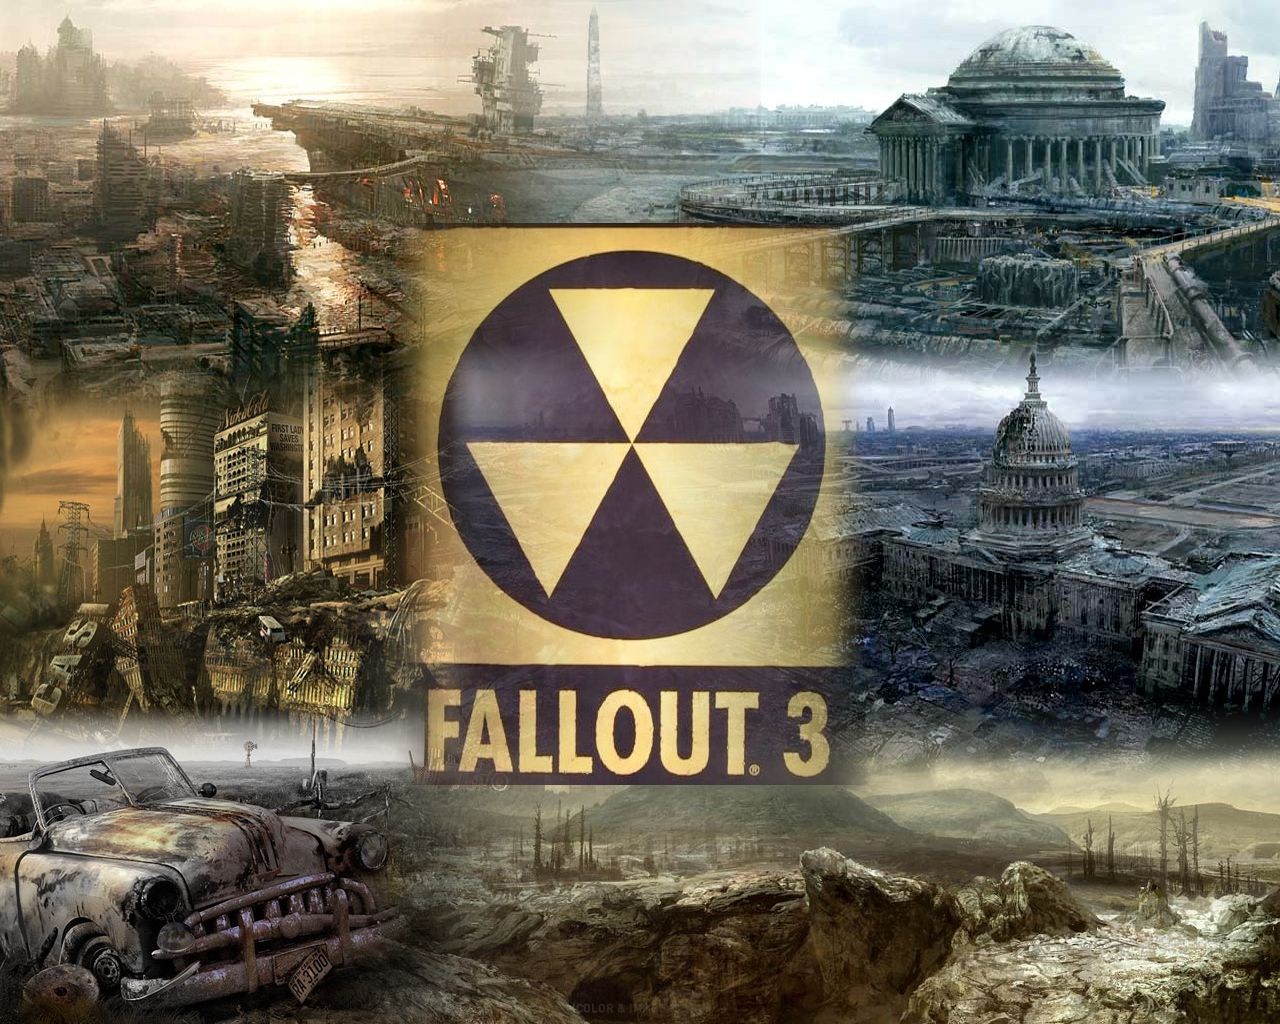 Fallout 3 wallpaper hd wallpapersafari fallout 3 wallpaper hd submited images 1280x1024 altavistaventures Gallery